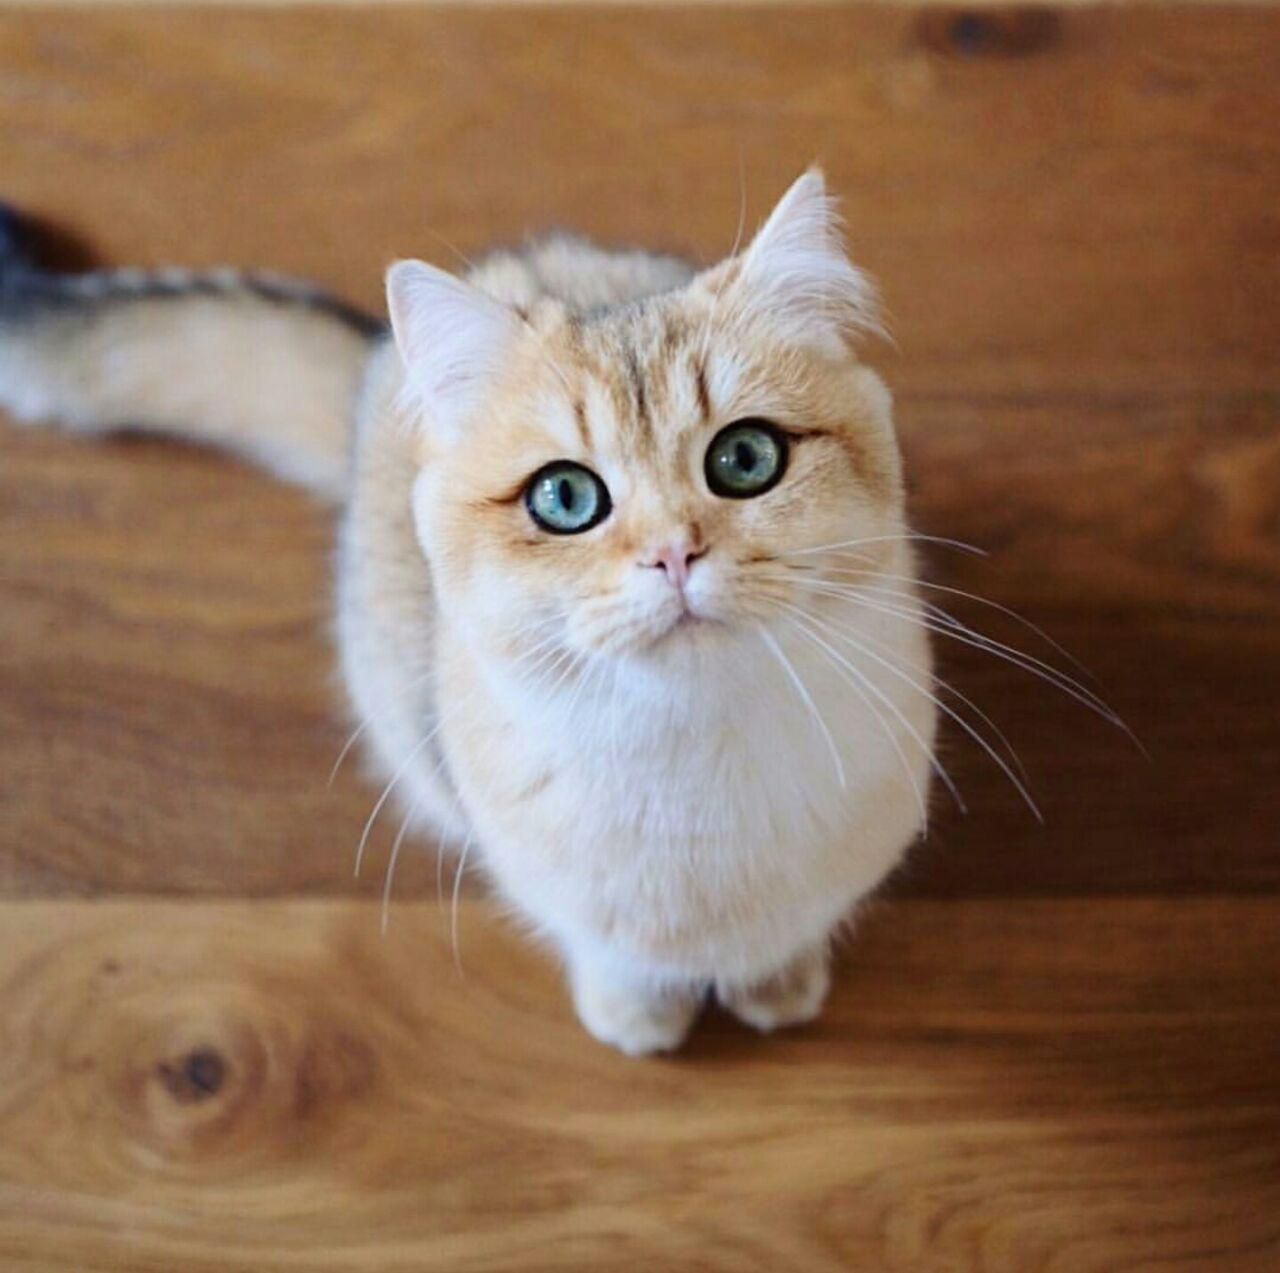 Pin By Snsyts On Animals British Shorthair British Shorthair Cats British Shorthair Kittens